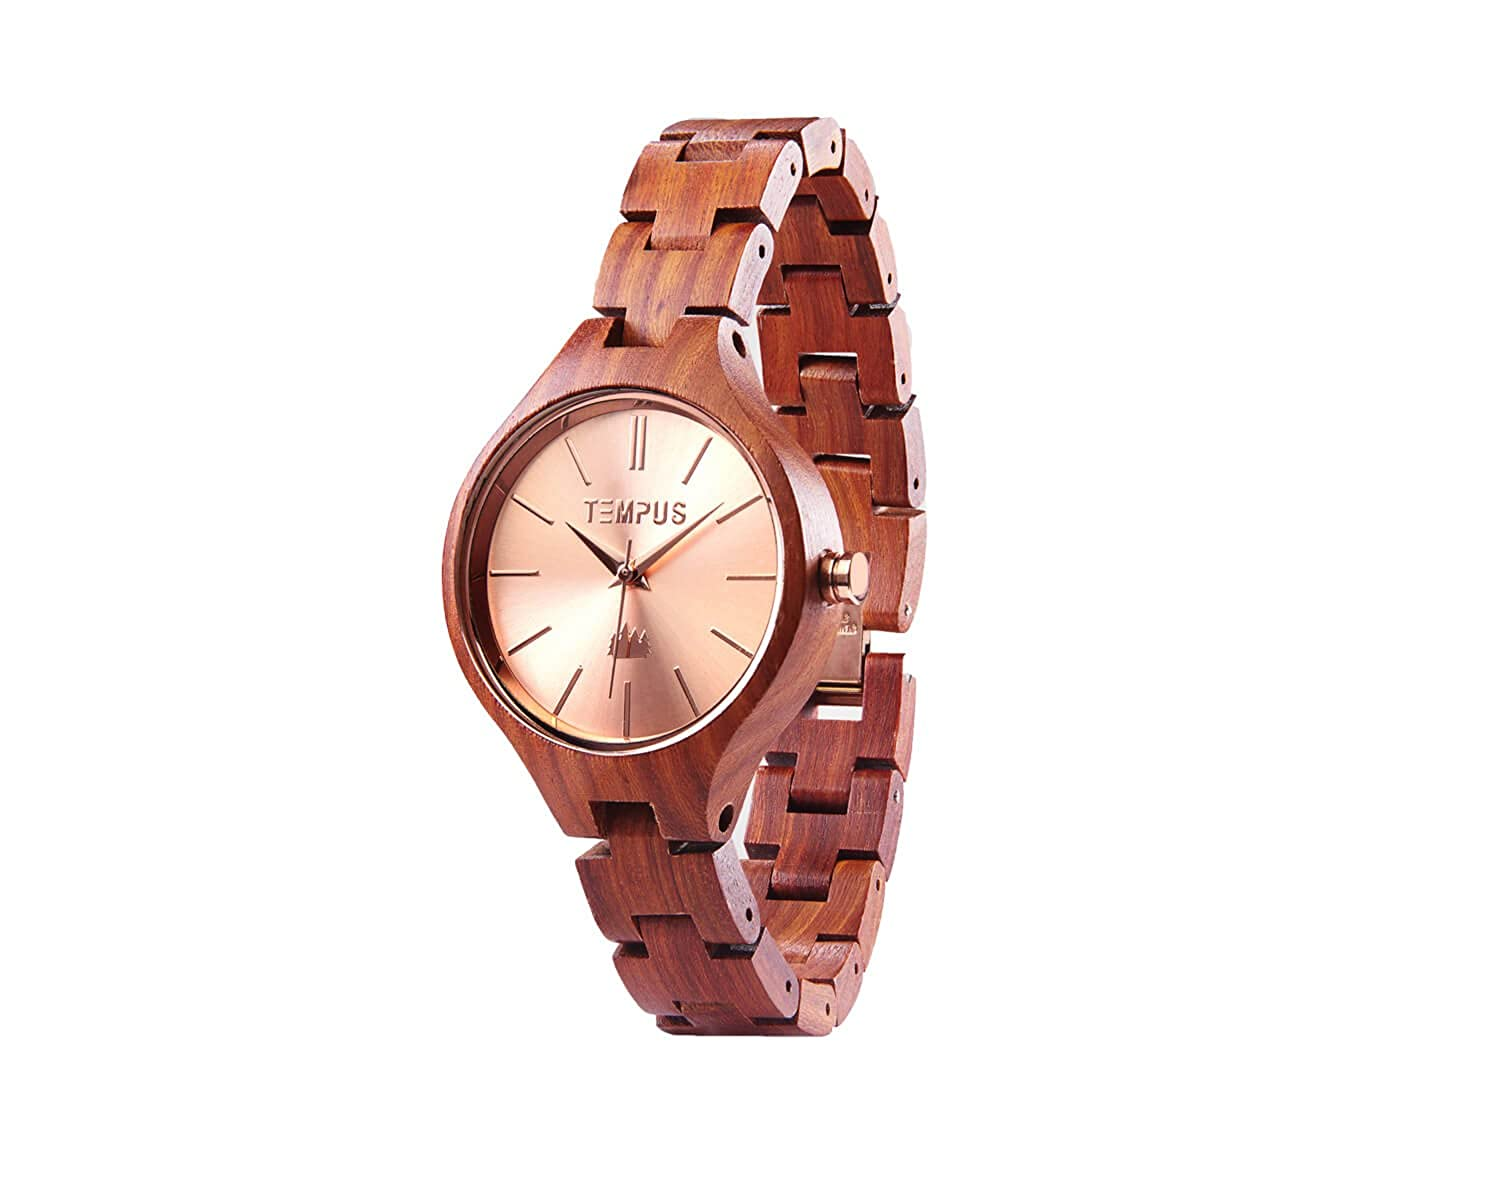 watch true products all boyd watches wood tree hut bamboo noir wooden